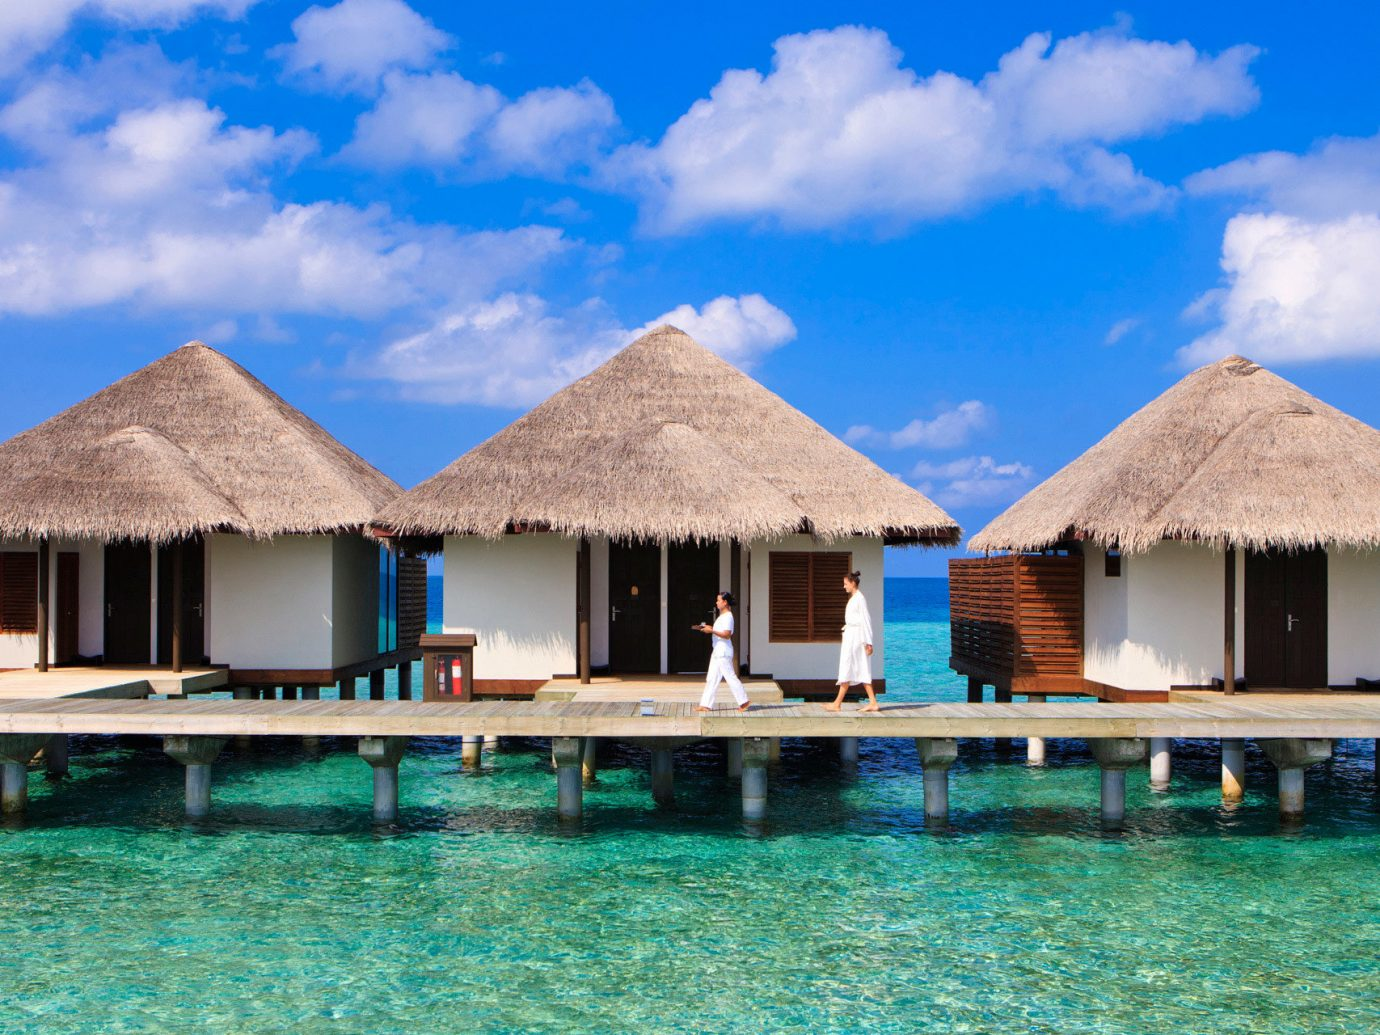 Hotels Romance Trip Ideas building outdoor sky house water swimming pool property Resort vacation estate Villa home Sea hut Lagoon cottage caribbean swimming Island